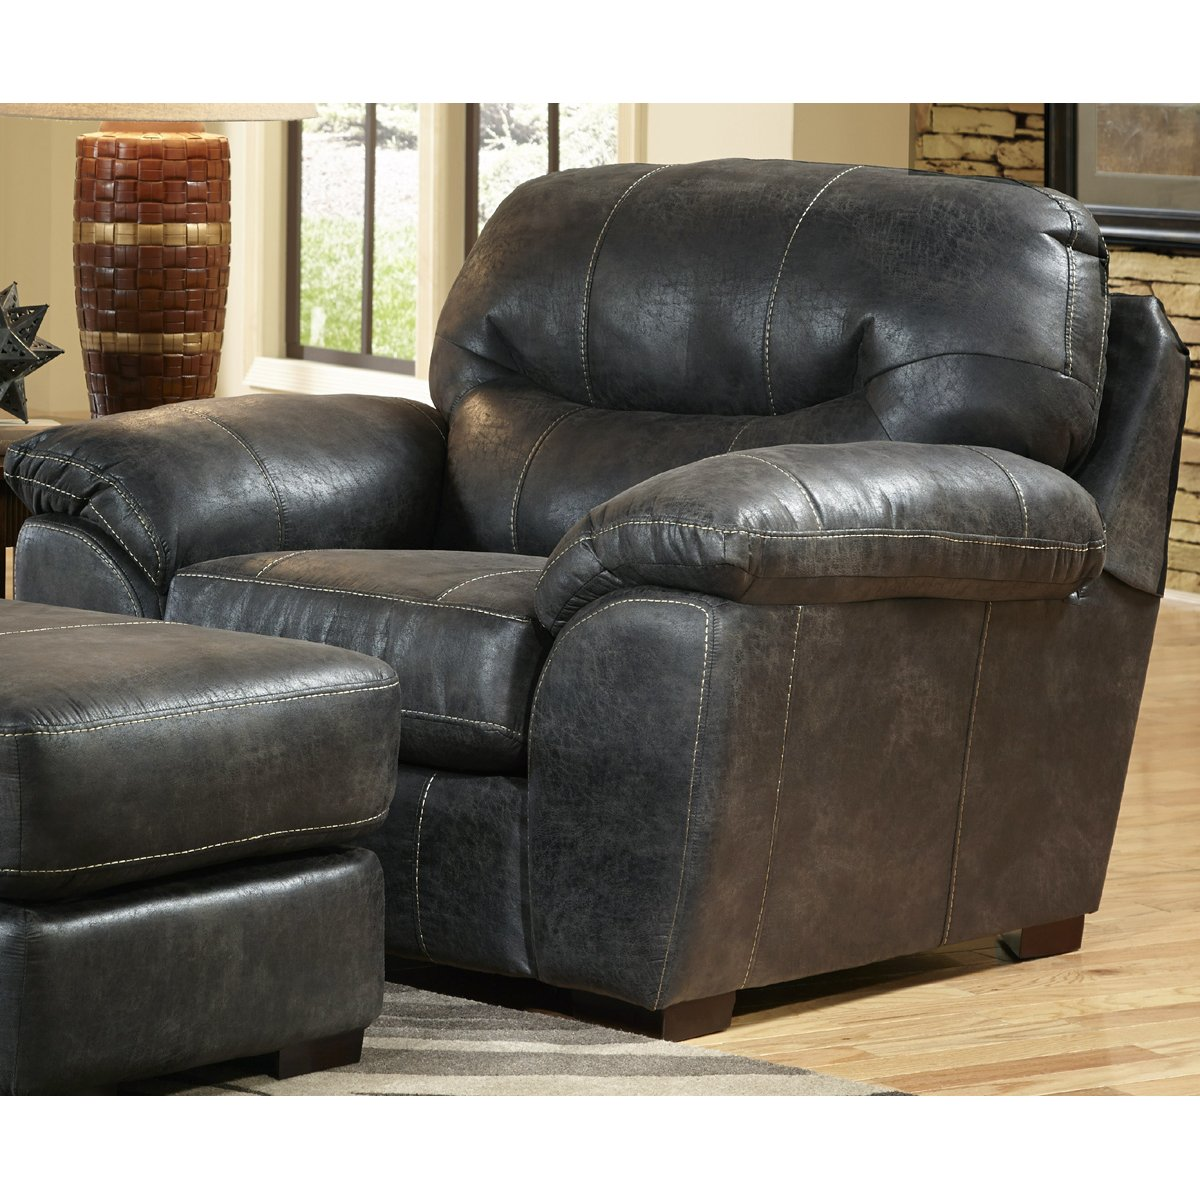 Leather Living Room Chairs Sale